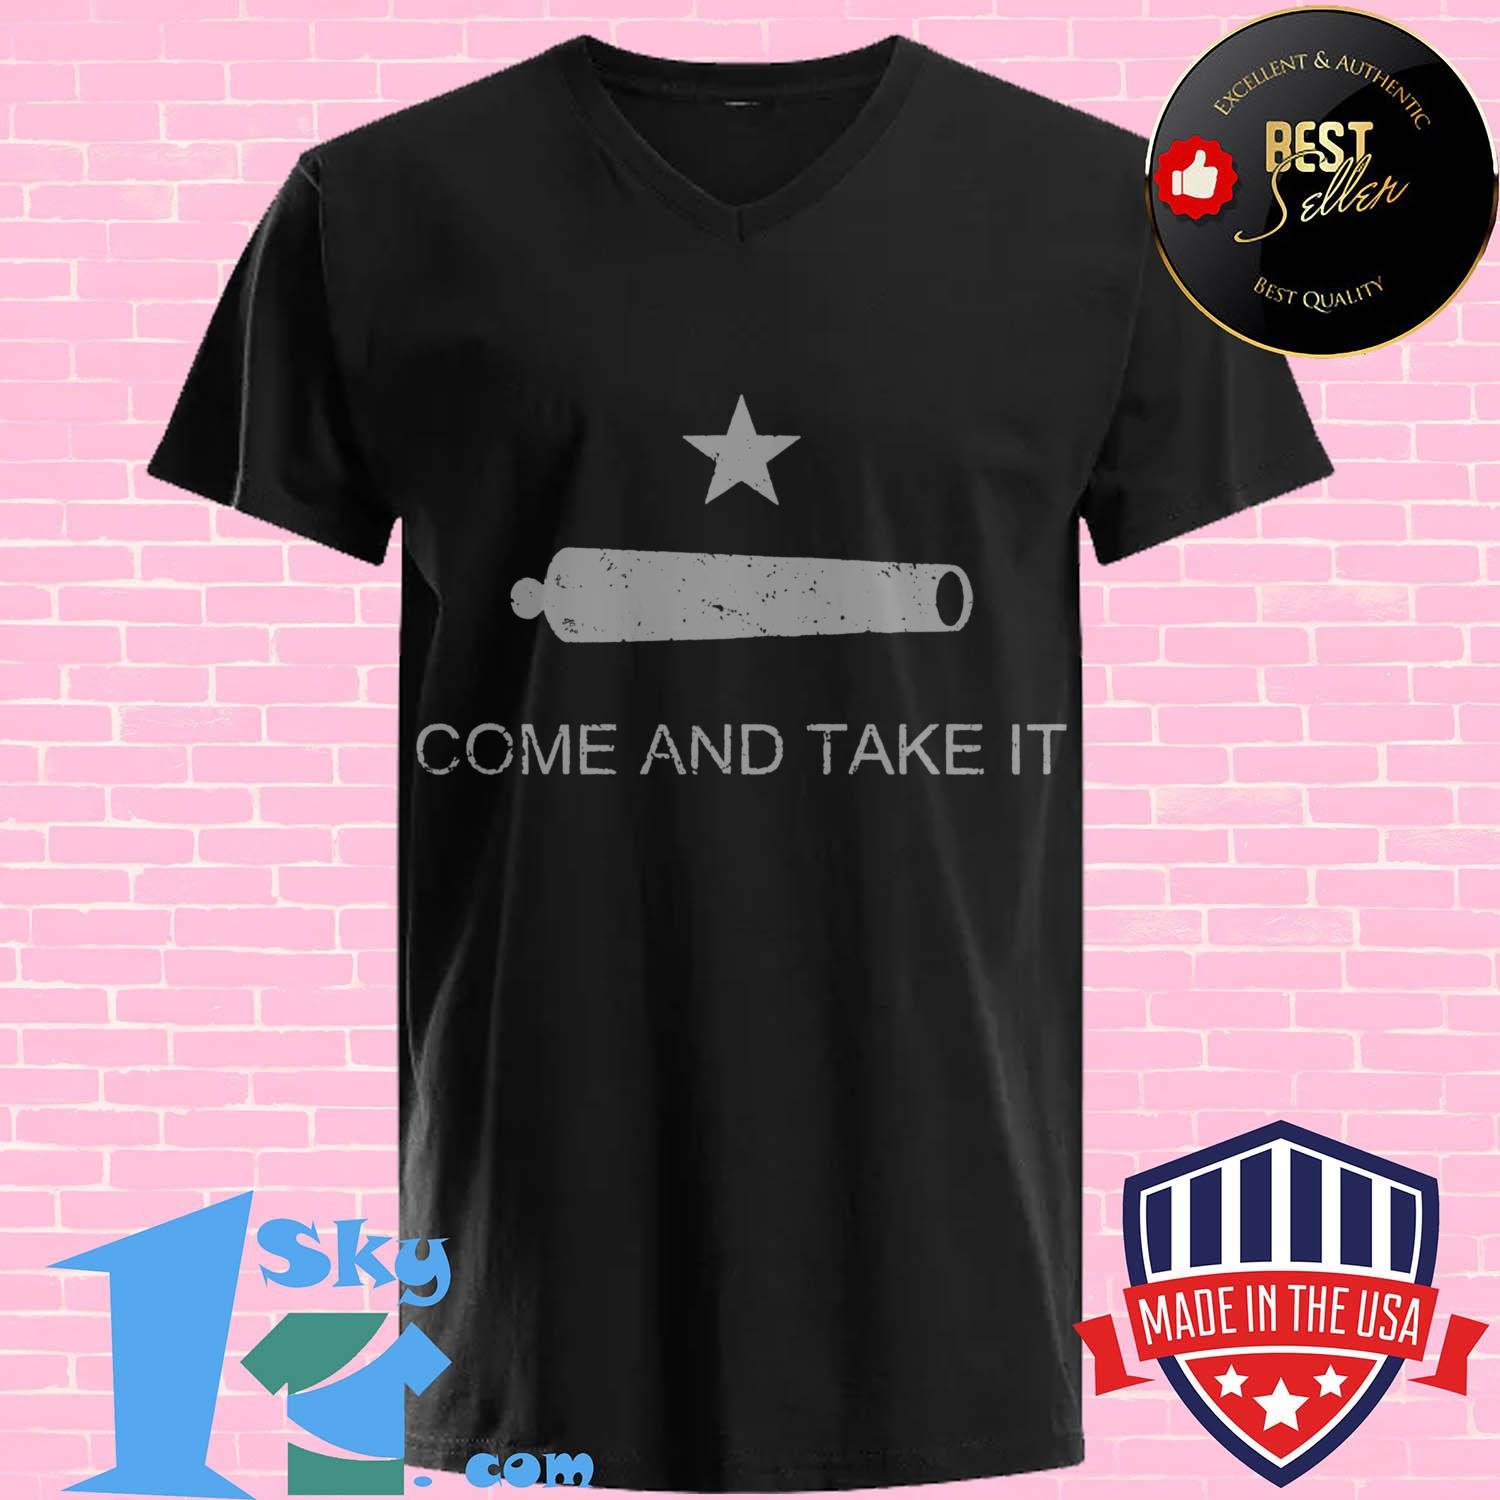 historic texas flag come and take it v neck - Historic Texas Flag Come and Take It shirt